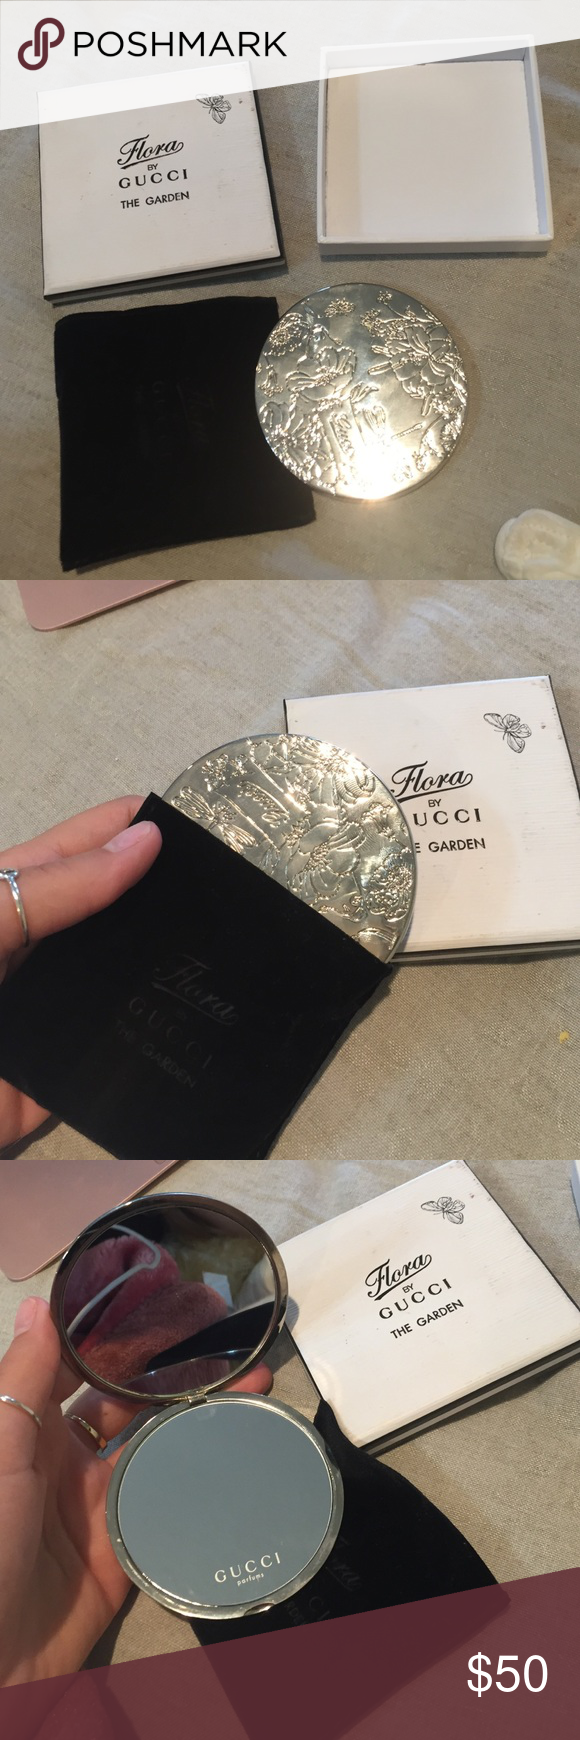 Gucci silver metal limited edition mirror. One of a kind. GUCCI double sided mirror. Plastic still not pealed off. Comes in its own bag and box for safe travel. Gucci Accessories